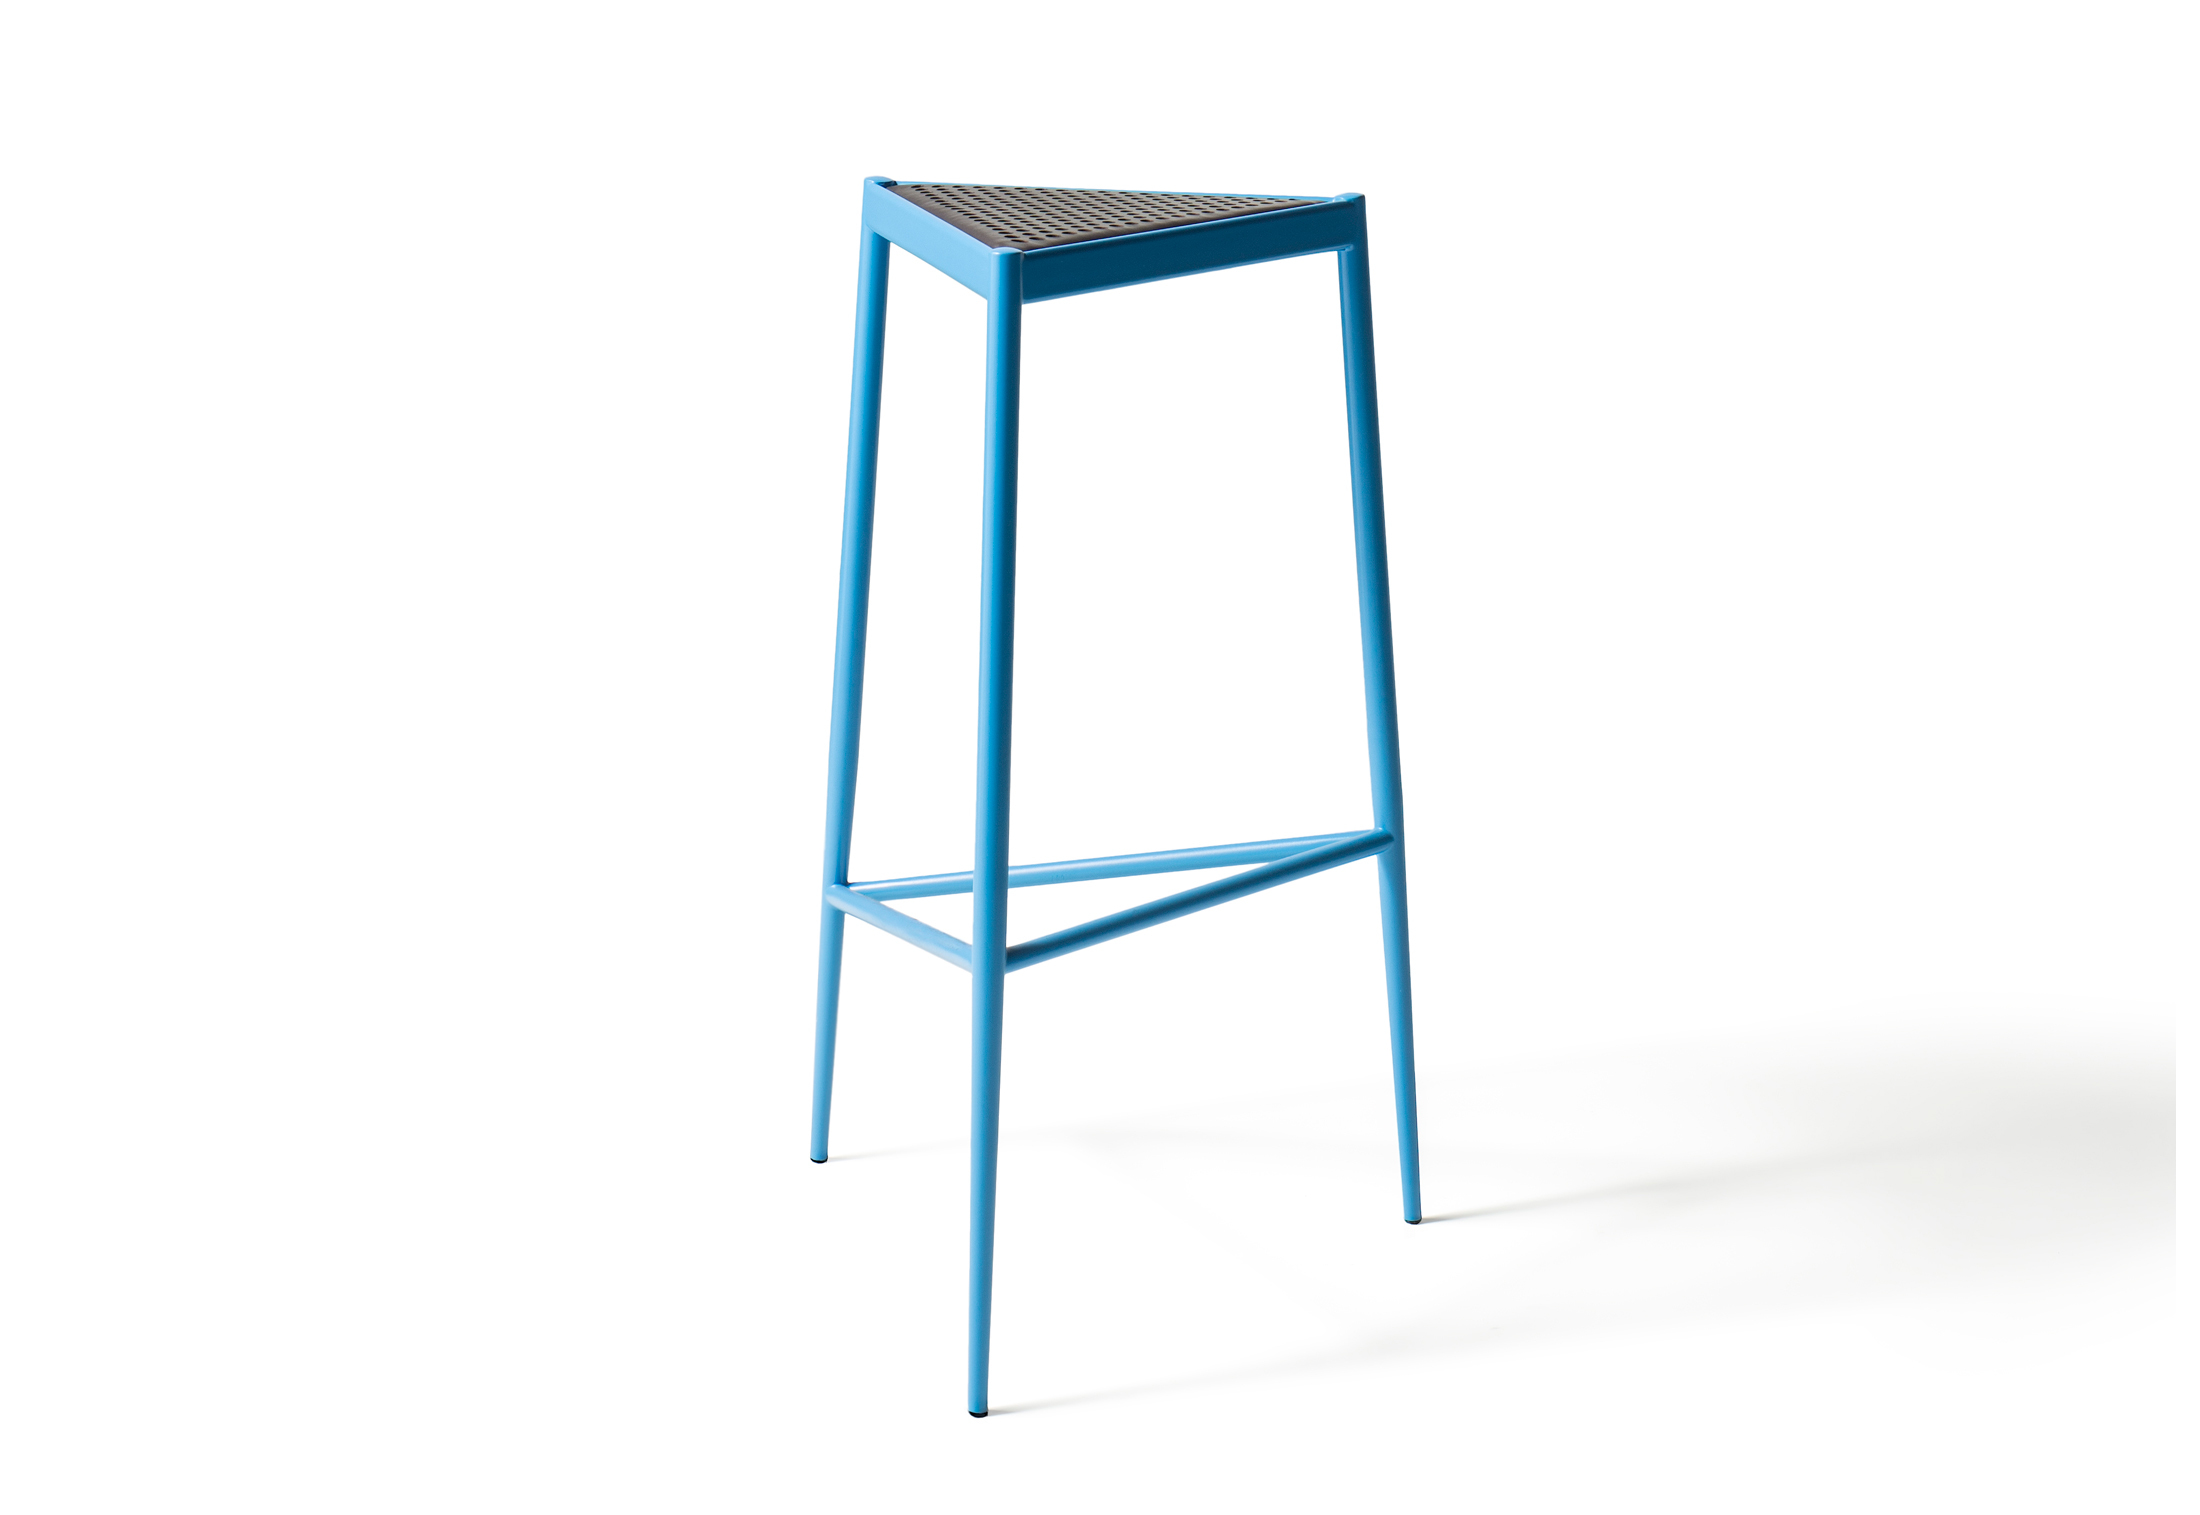 Superb Acciaio Stool By Cappellini Stylepark Squirreltailoven Fun Painted Chair Ideas Images Squirreltailovenorg